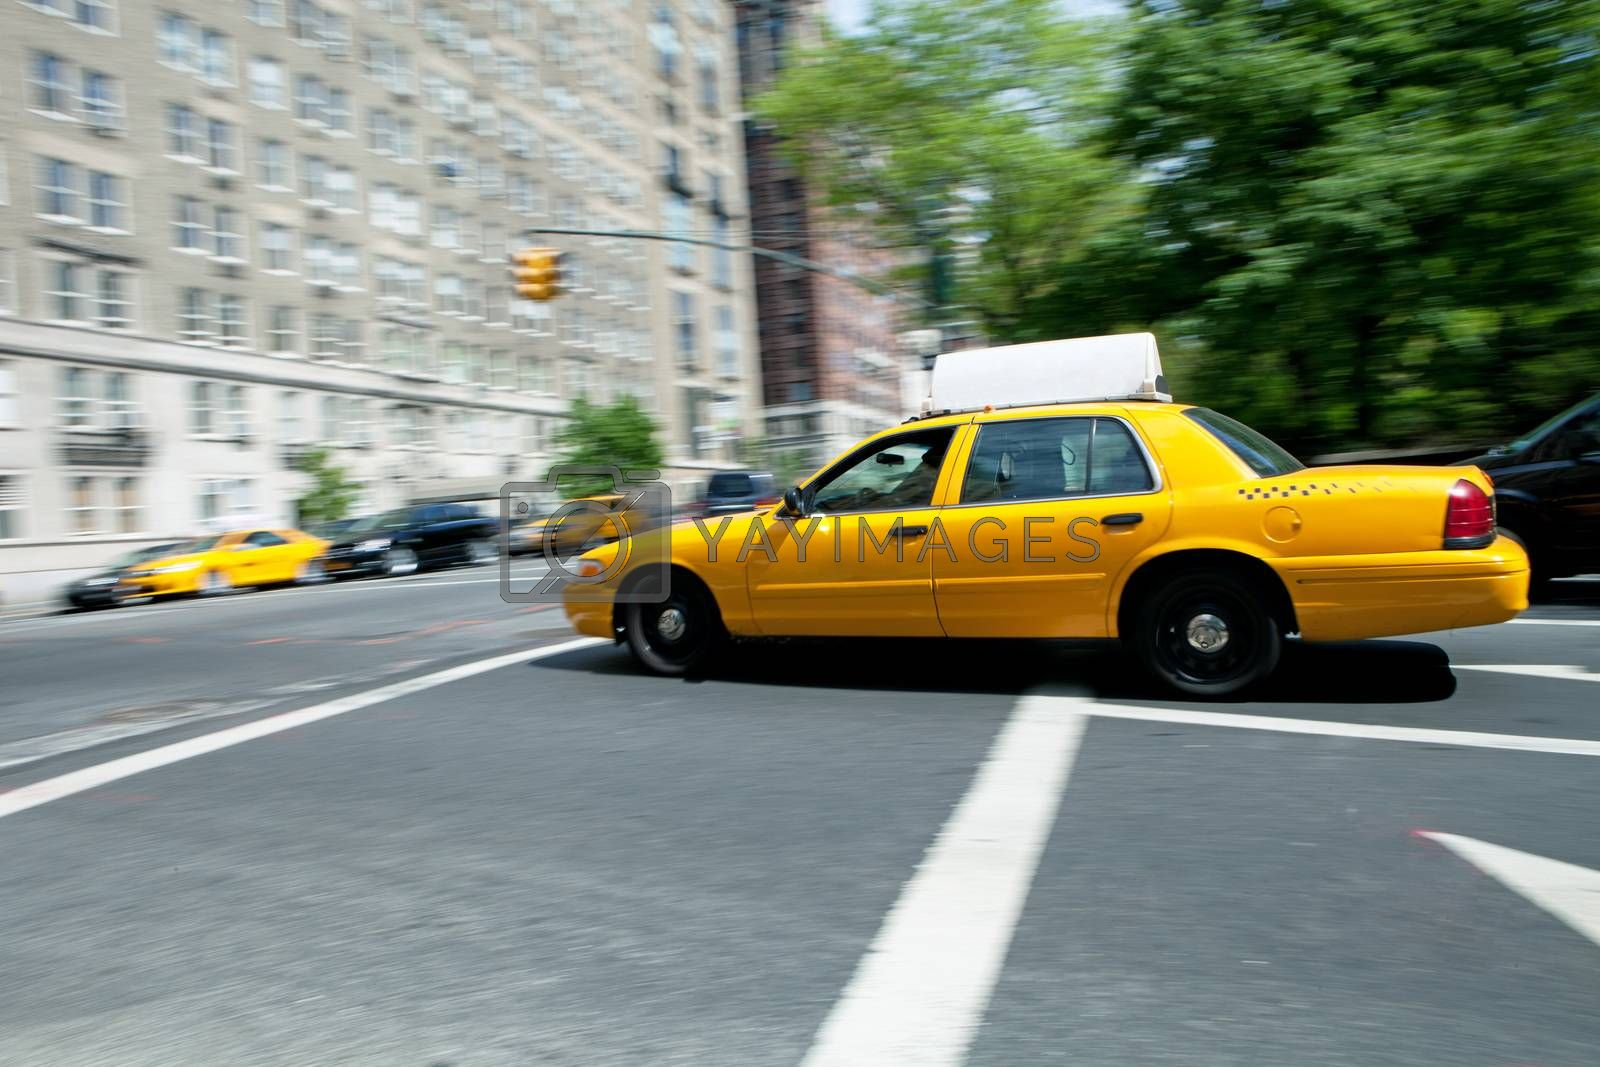 Speeding NYC Taxi by graficallyminded